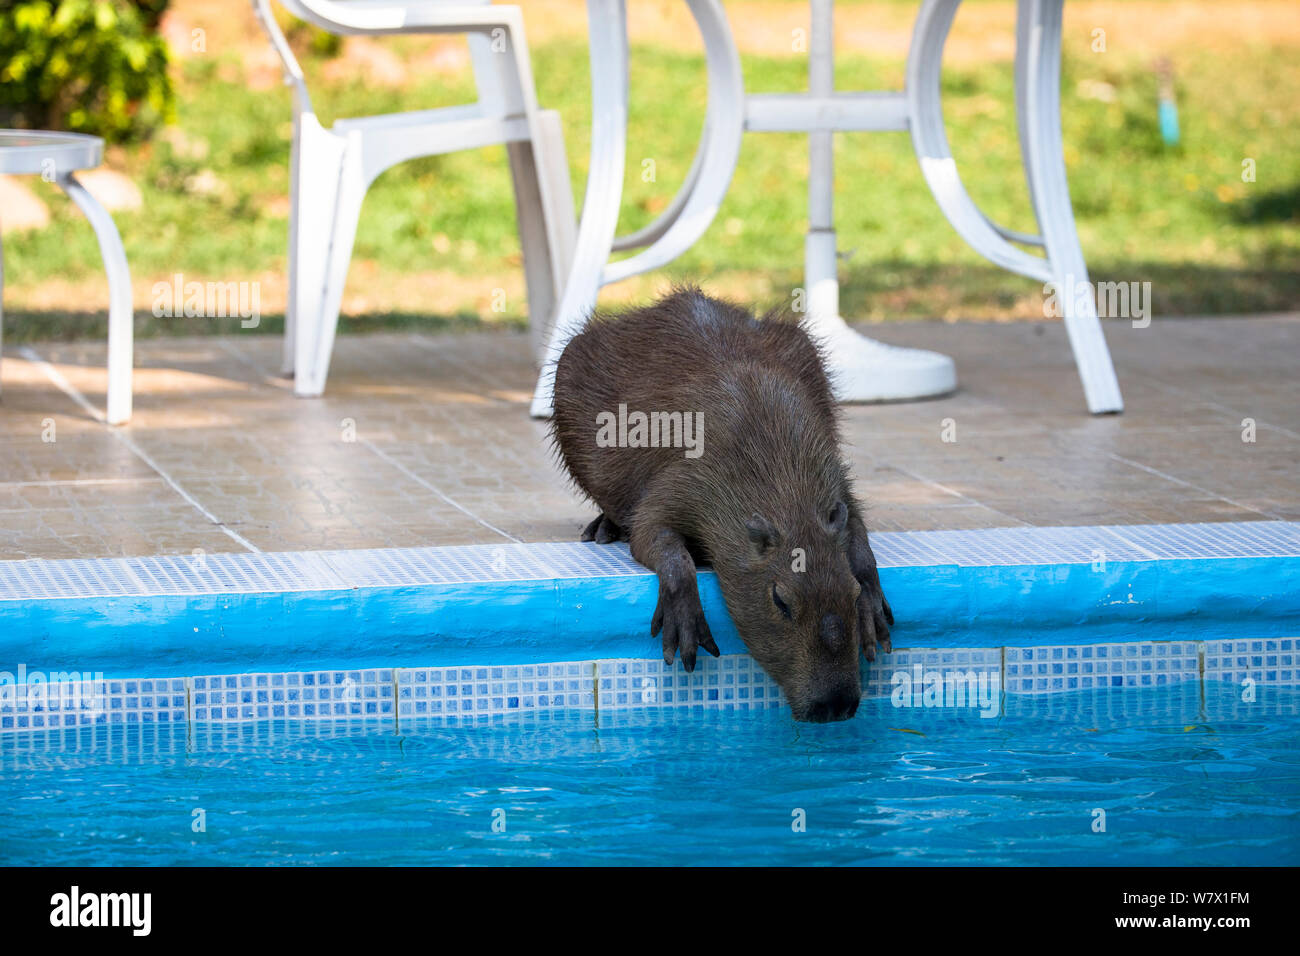 Capybara (Hydrochoerus hydrochaeris) drinking water from a swimming pool. Hato El Cedral, Llanos, Venezuela. Stock Photo